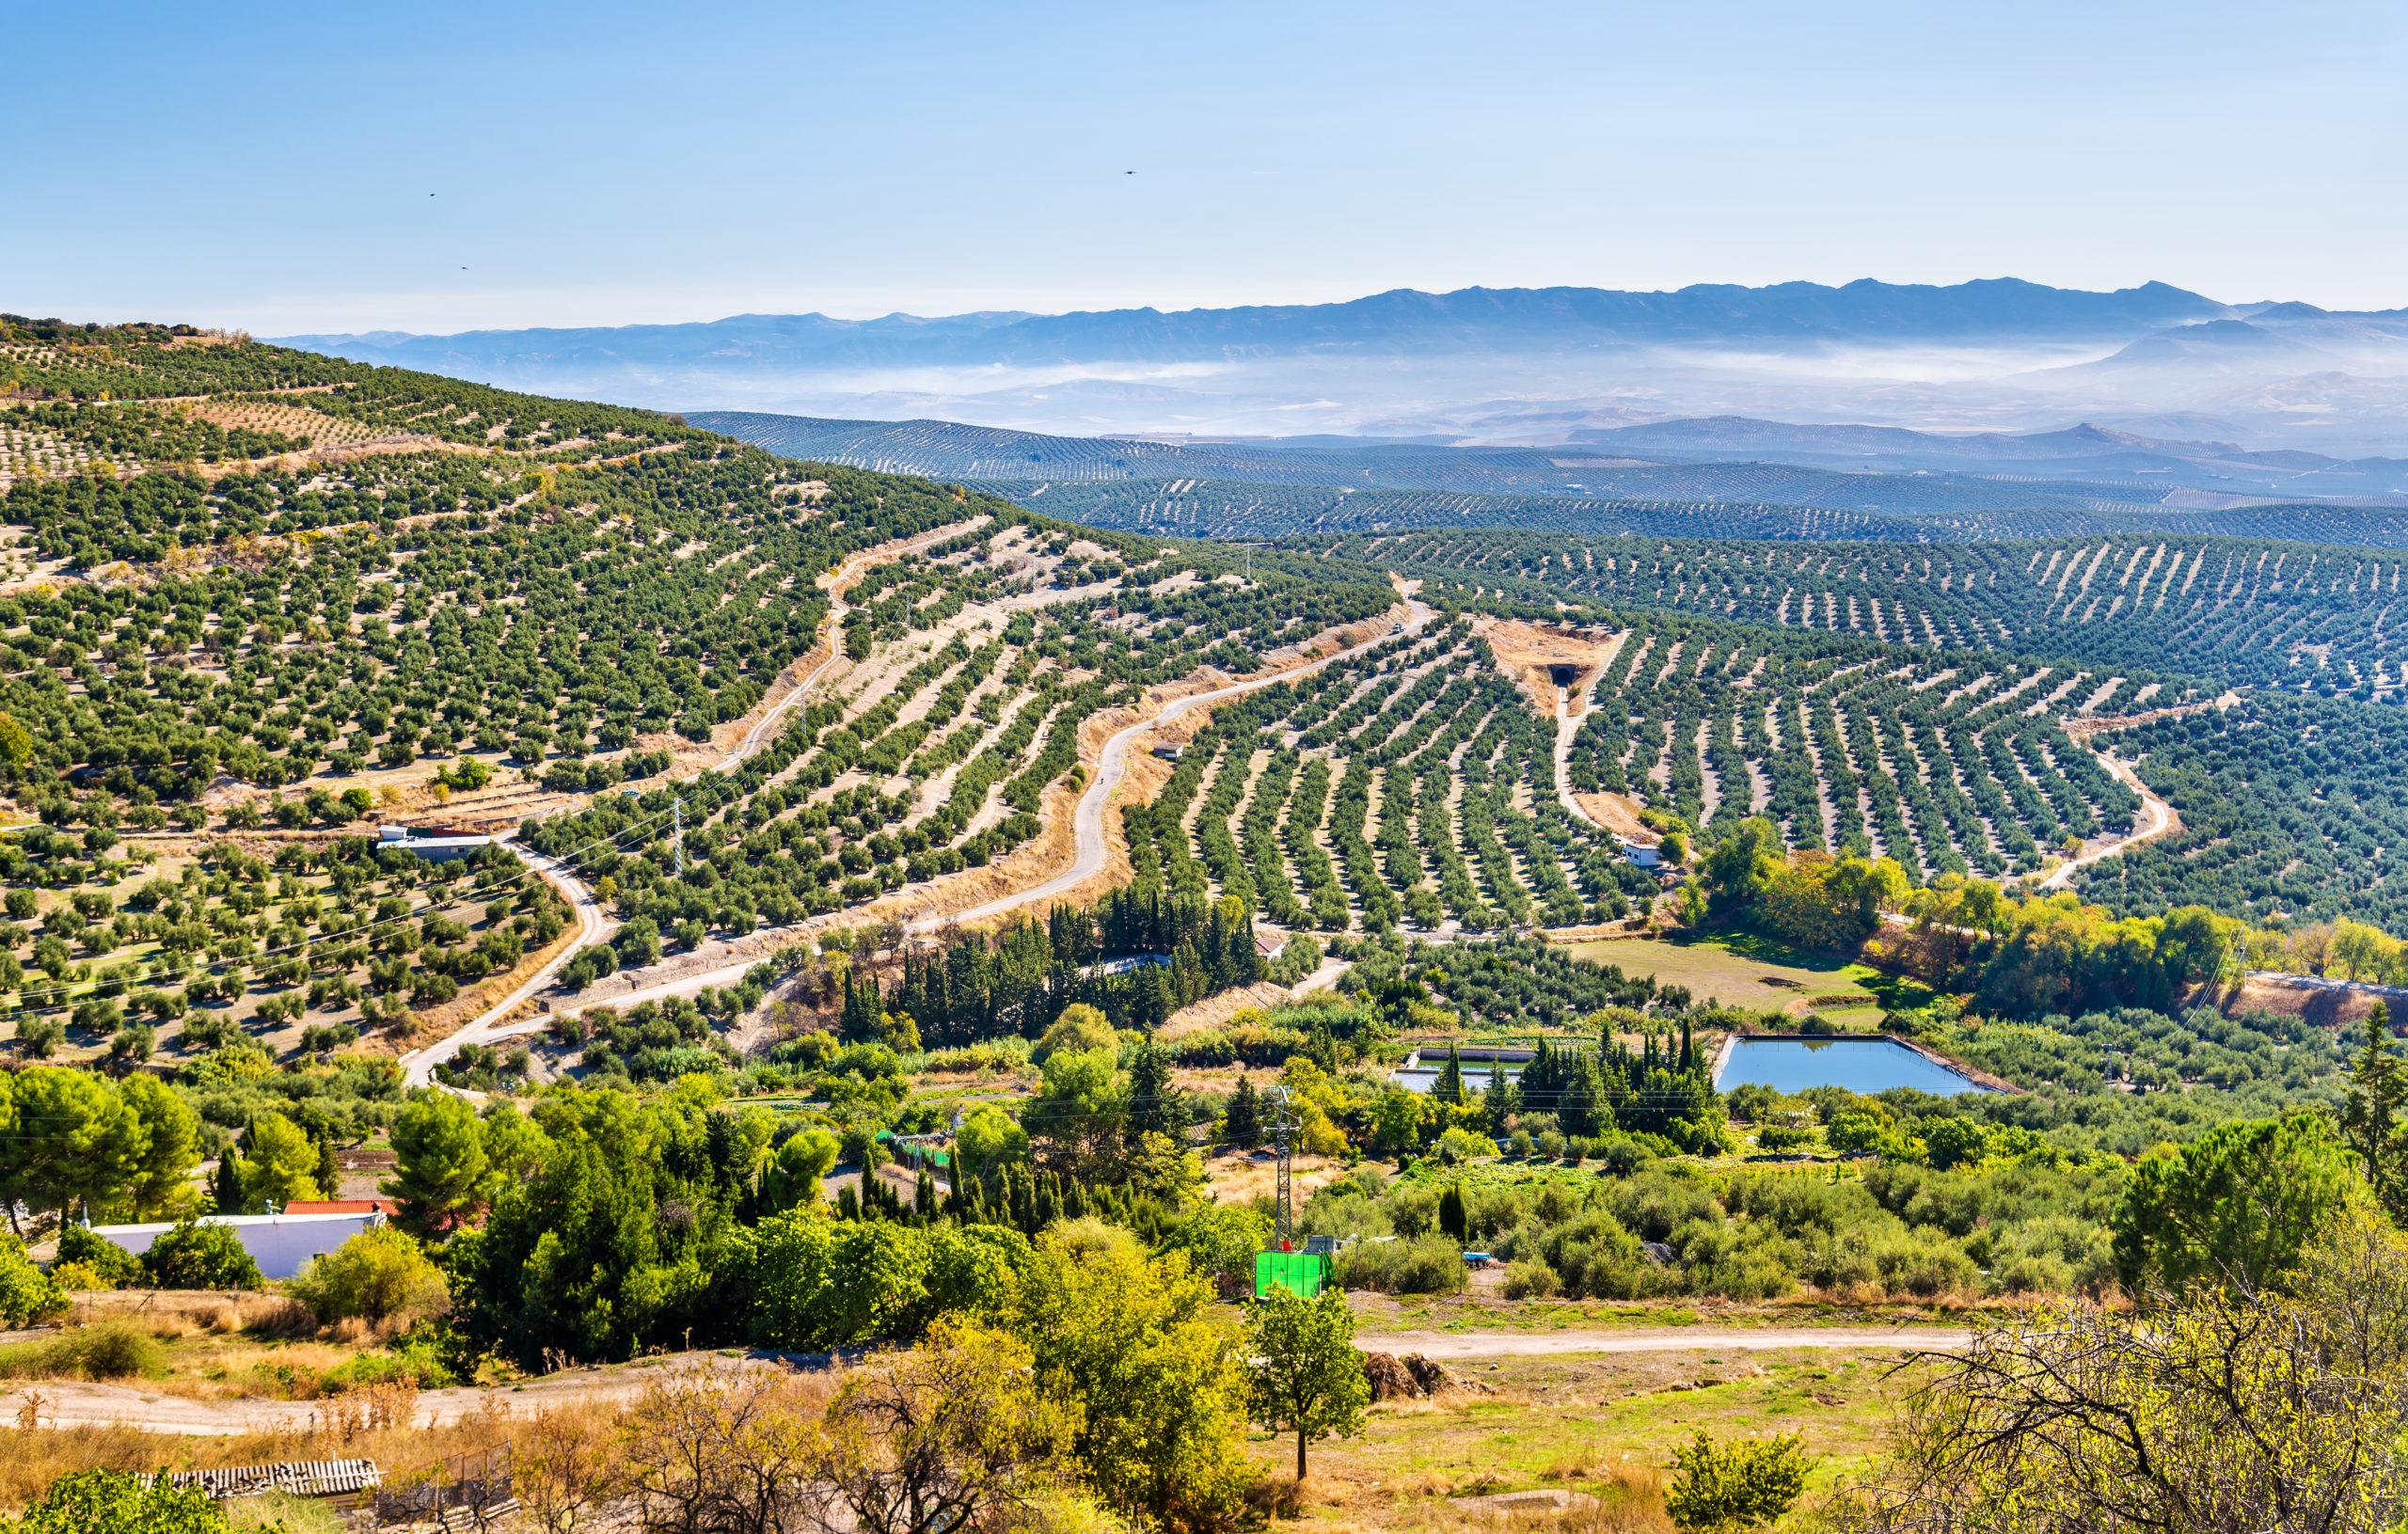 Landscape with olive fields near Ubeda - Spain